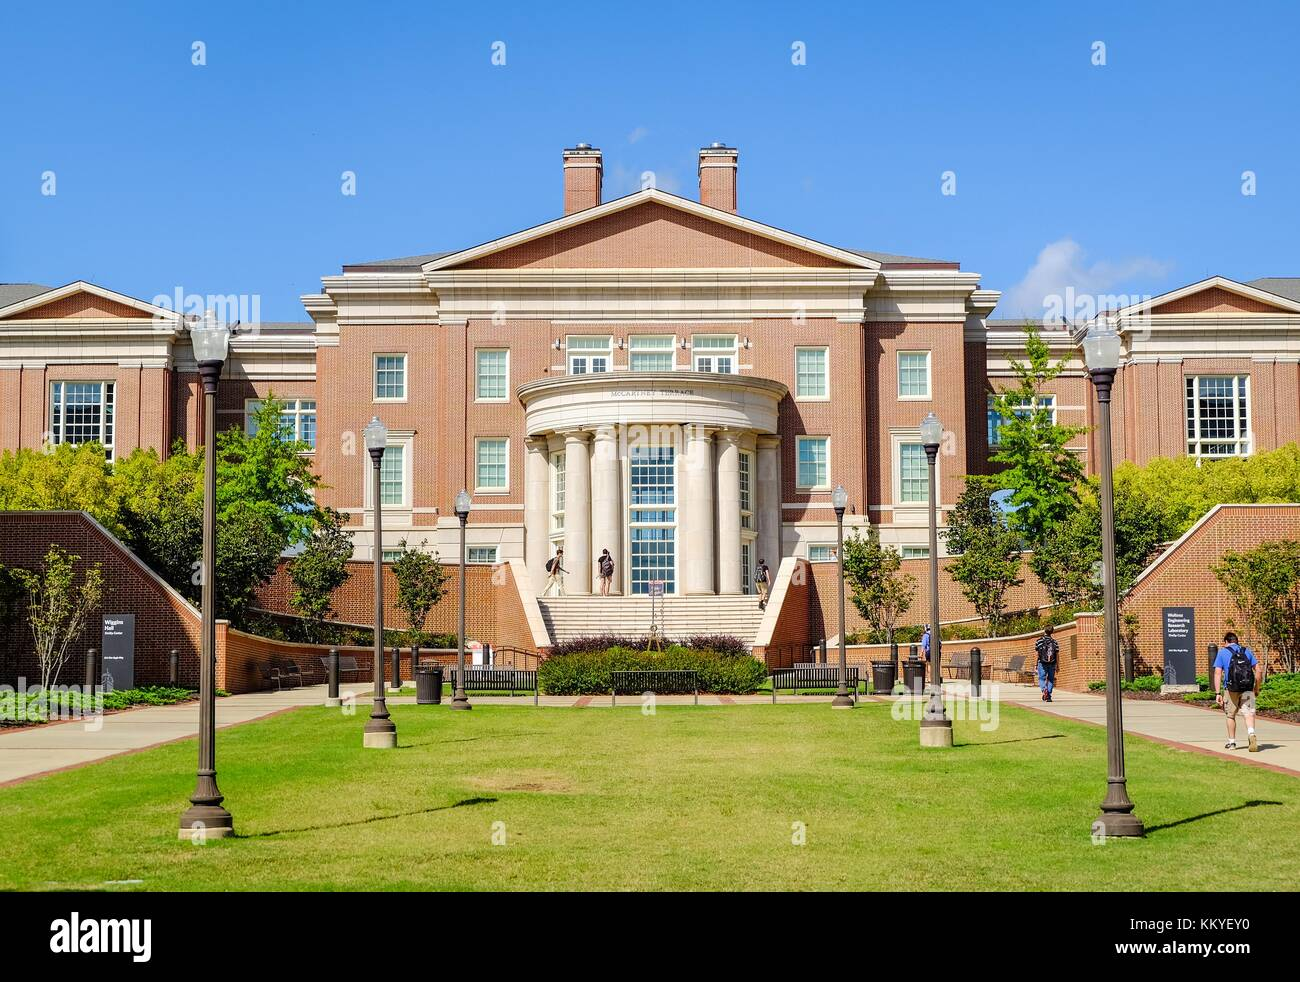 Aubur, AL, USA - October 19, 2017: Auburn University in Auburn - Lee County, Alabama, USA. - Stock Image